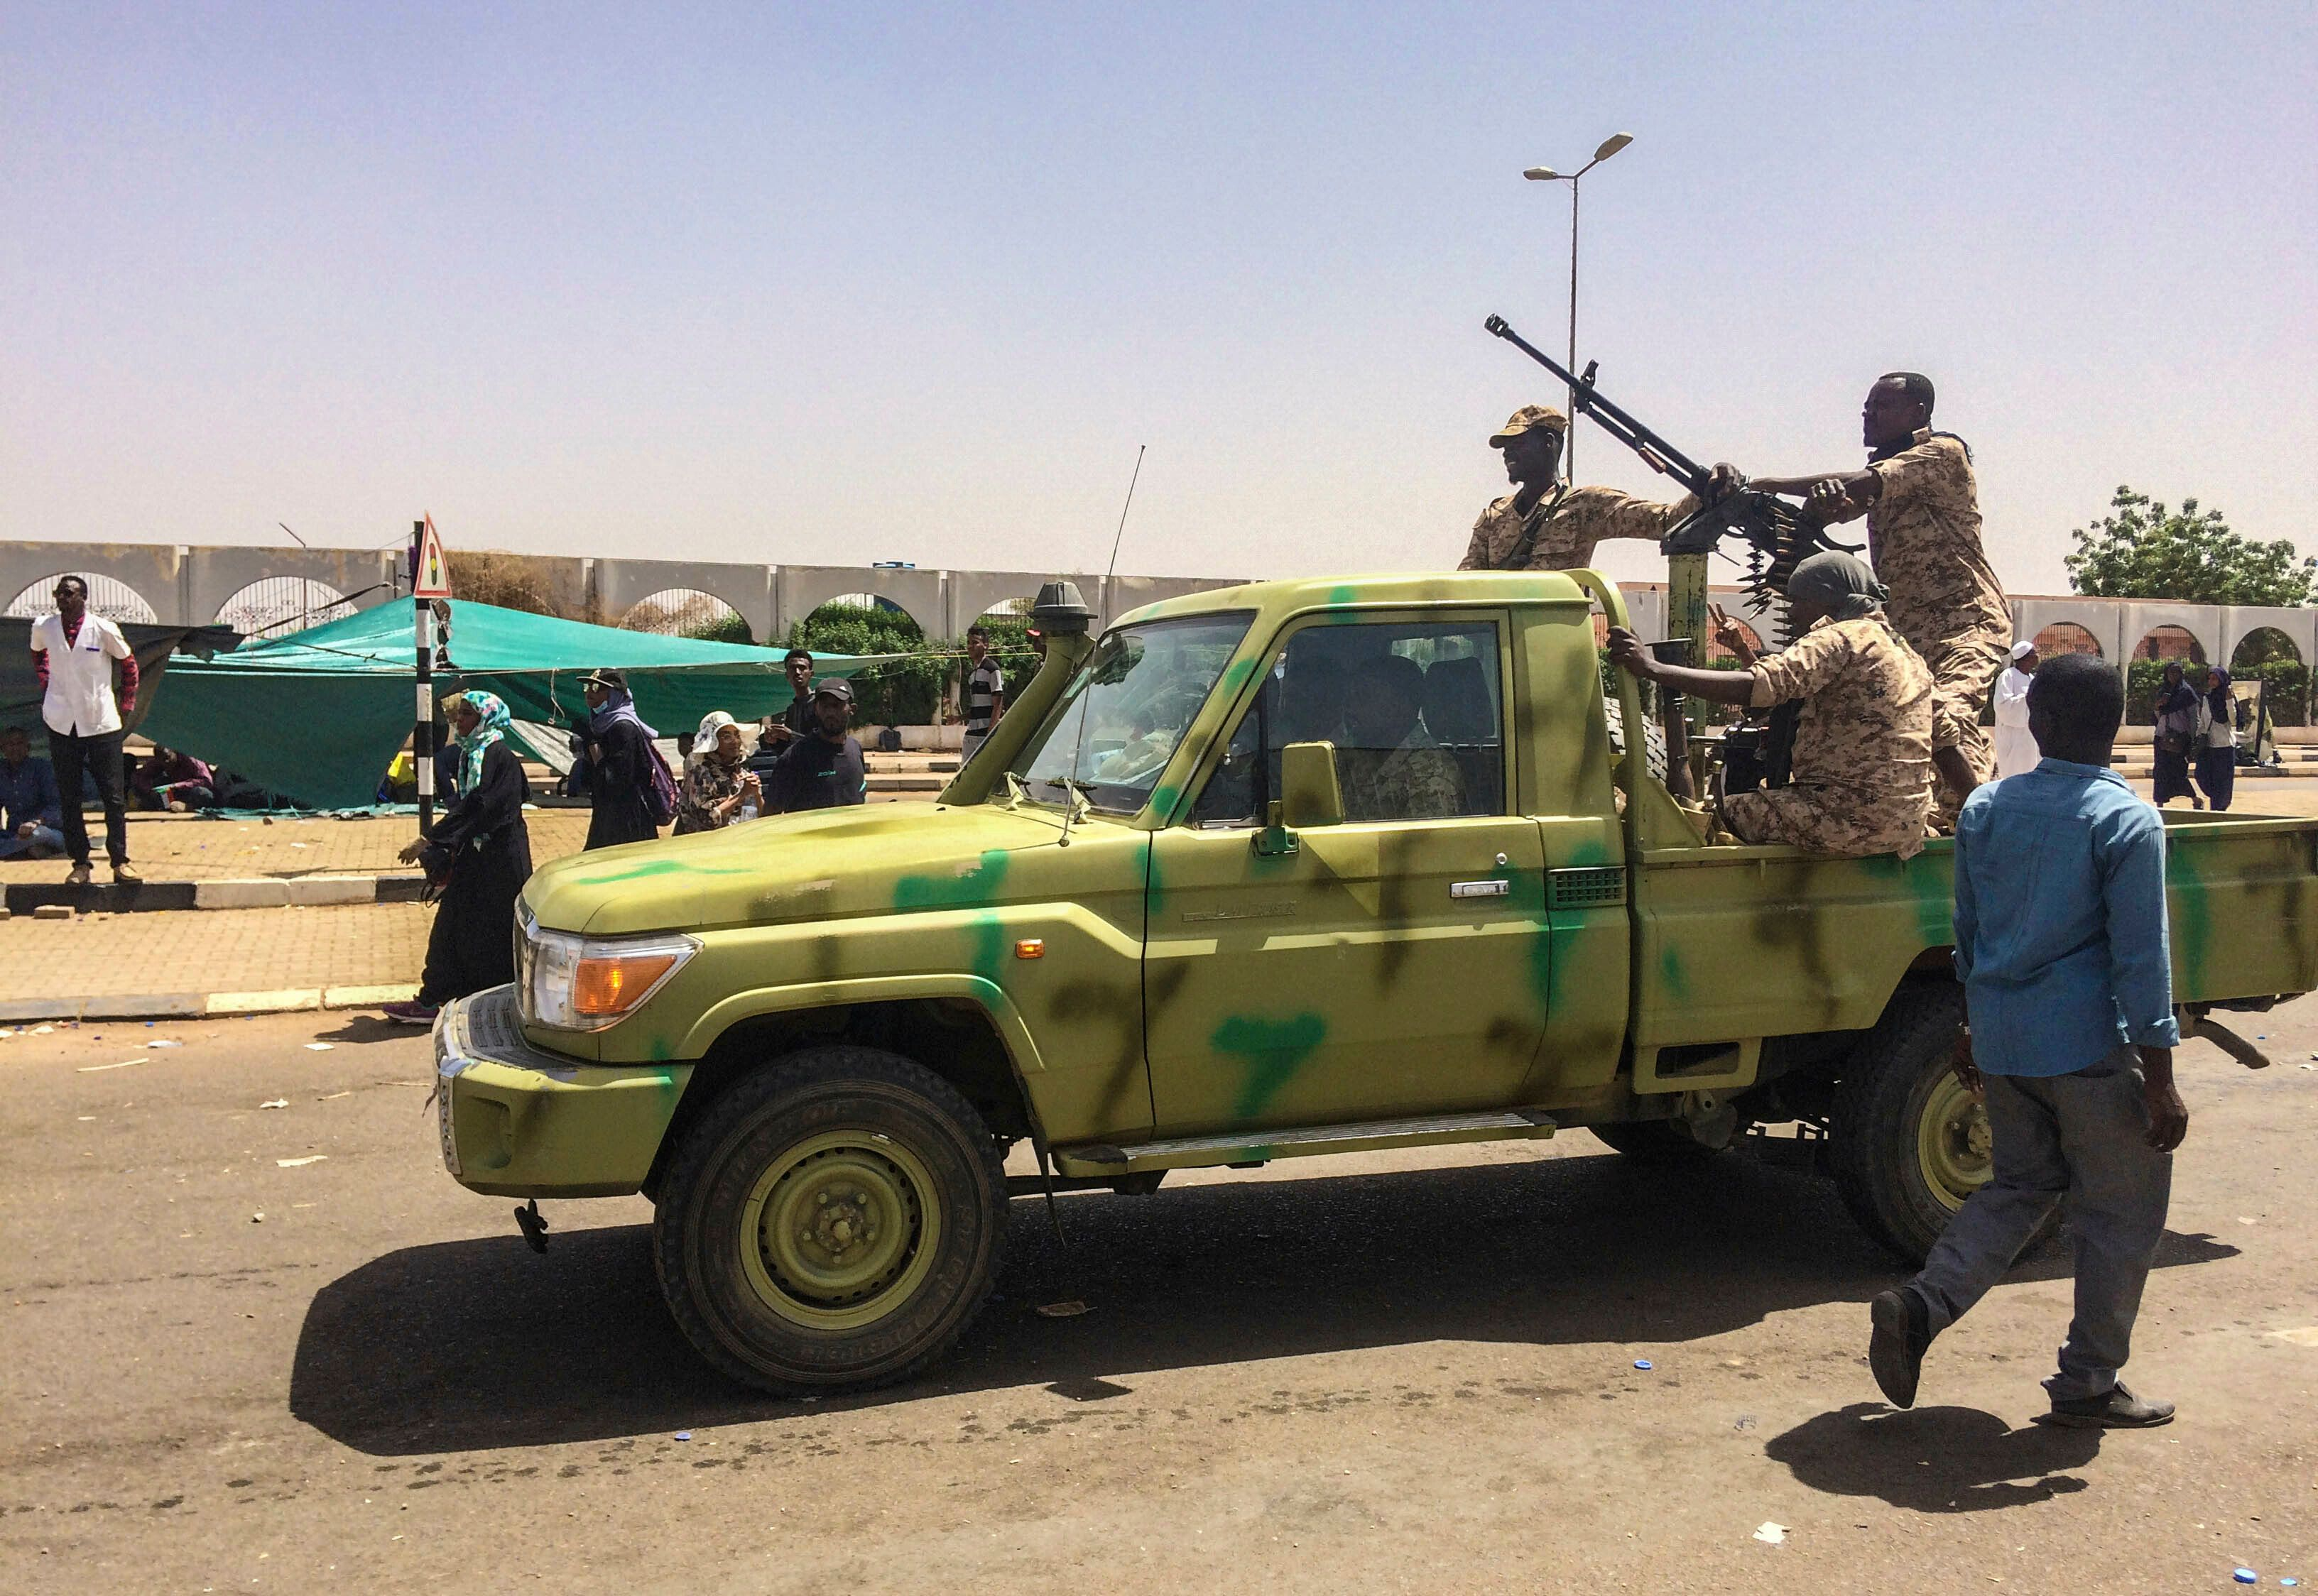 Sudanese army soldiers patrol near protesters gathered near the military headquarters, Tuesday, April 9, 2019, in the capital Khartoum, Sudan. Activists behind anti-government protests in Sudan say security forces have killed at least seven people, including a military officer, in another attempt to break up the sit-in outside the military headquarters in Khartoum. A spokeswoman for the Sudanese Professionals Association, said clashes erupted again early Tuesday between security forces and protesters who have been camping out in front of the complex in Khartoum since Saturday. (AP Photo)